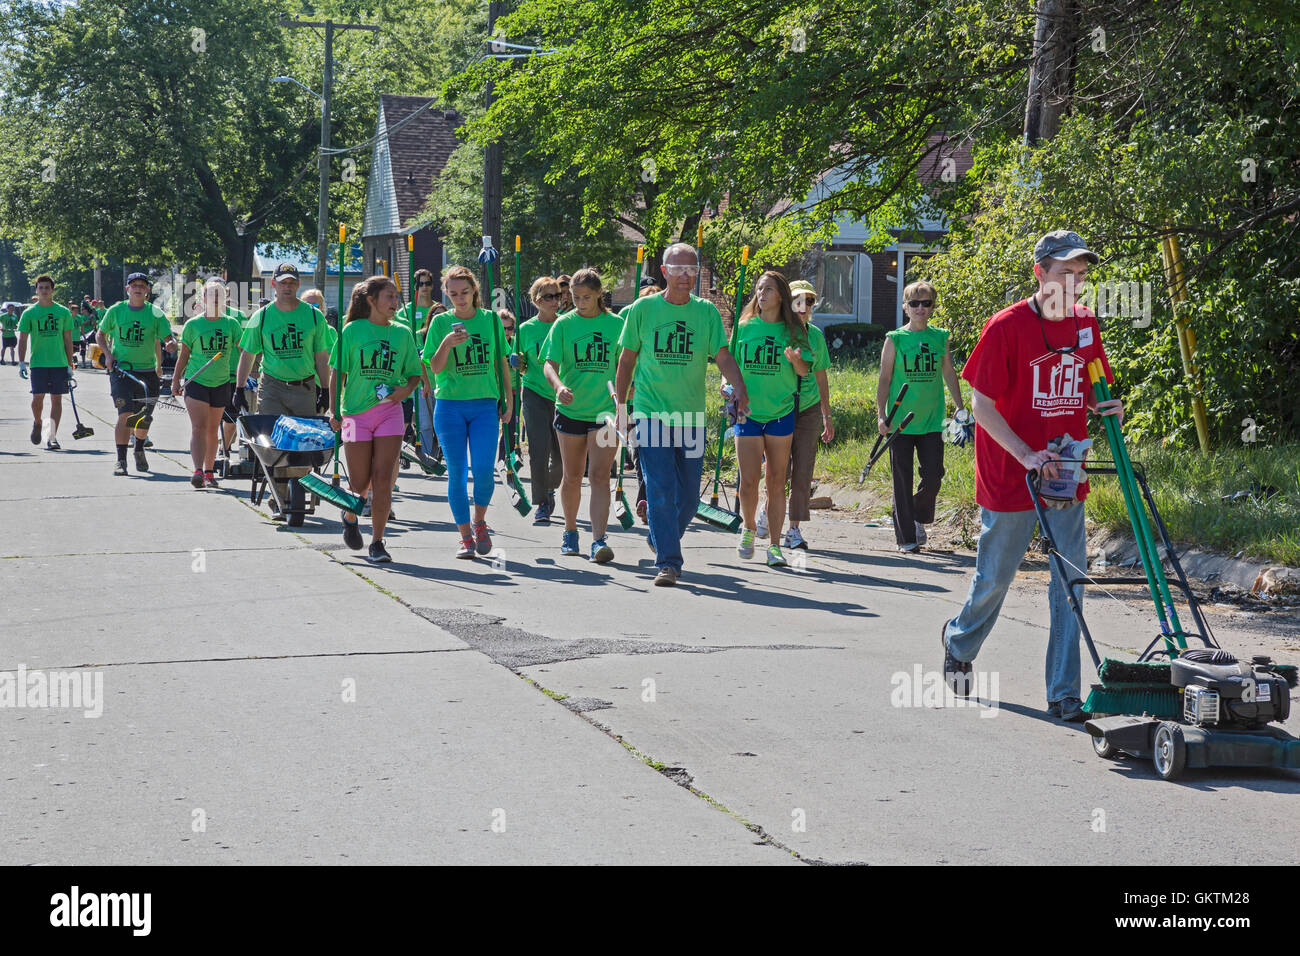 Detroit, Michigan - Volunteers clean up a distressed neighborhood during a week-long community improvement initiative. Stock Photo